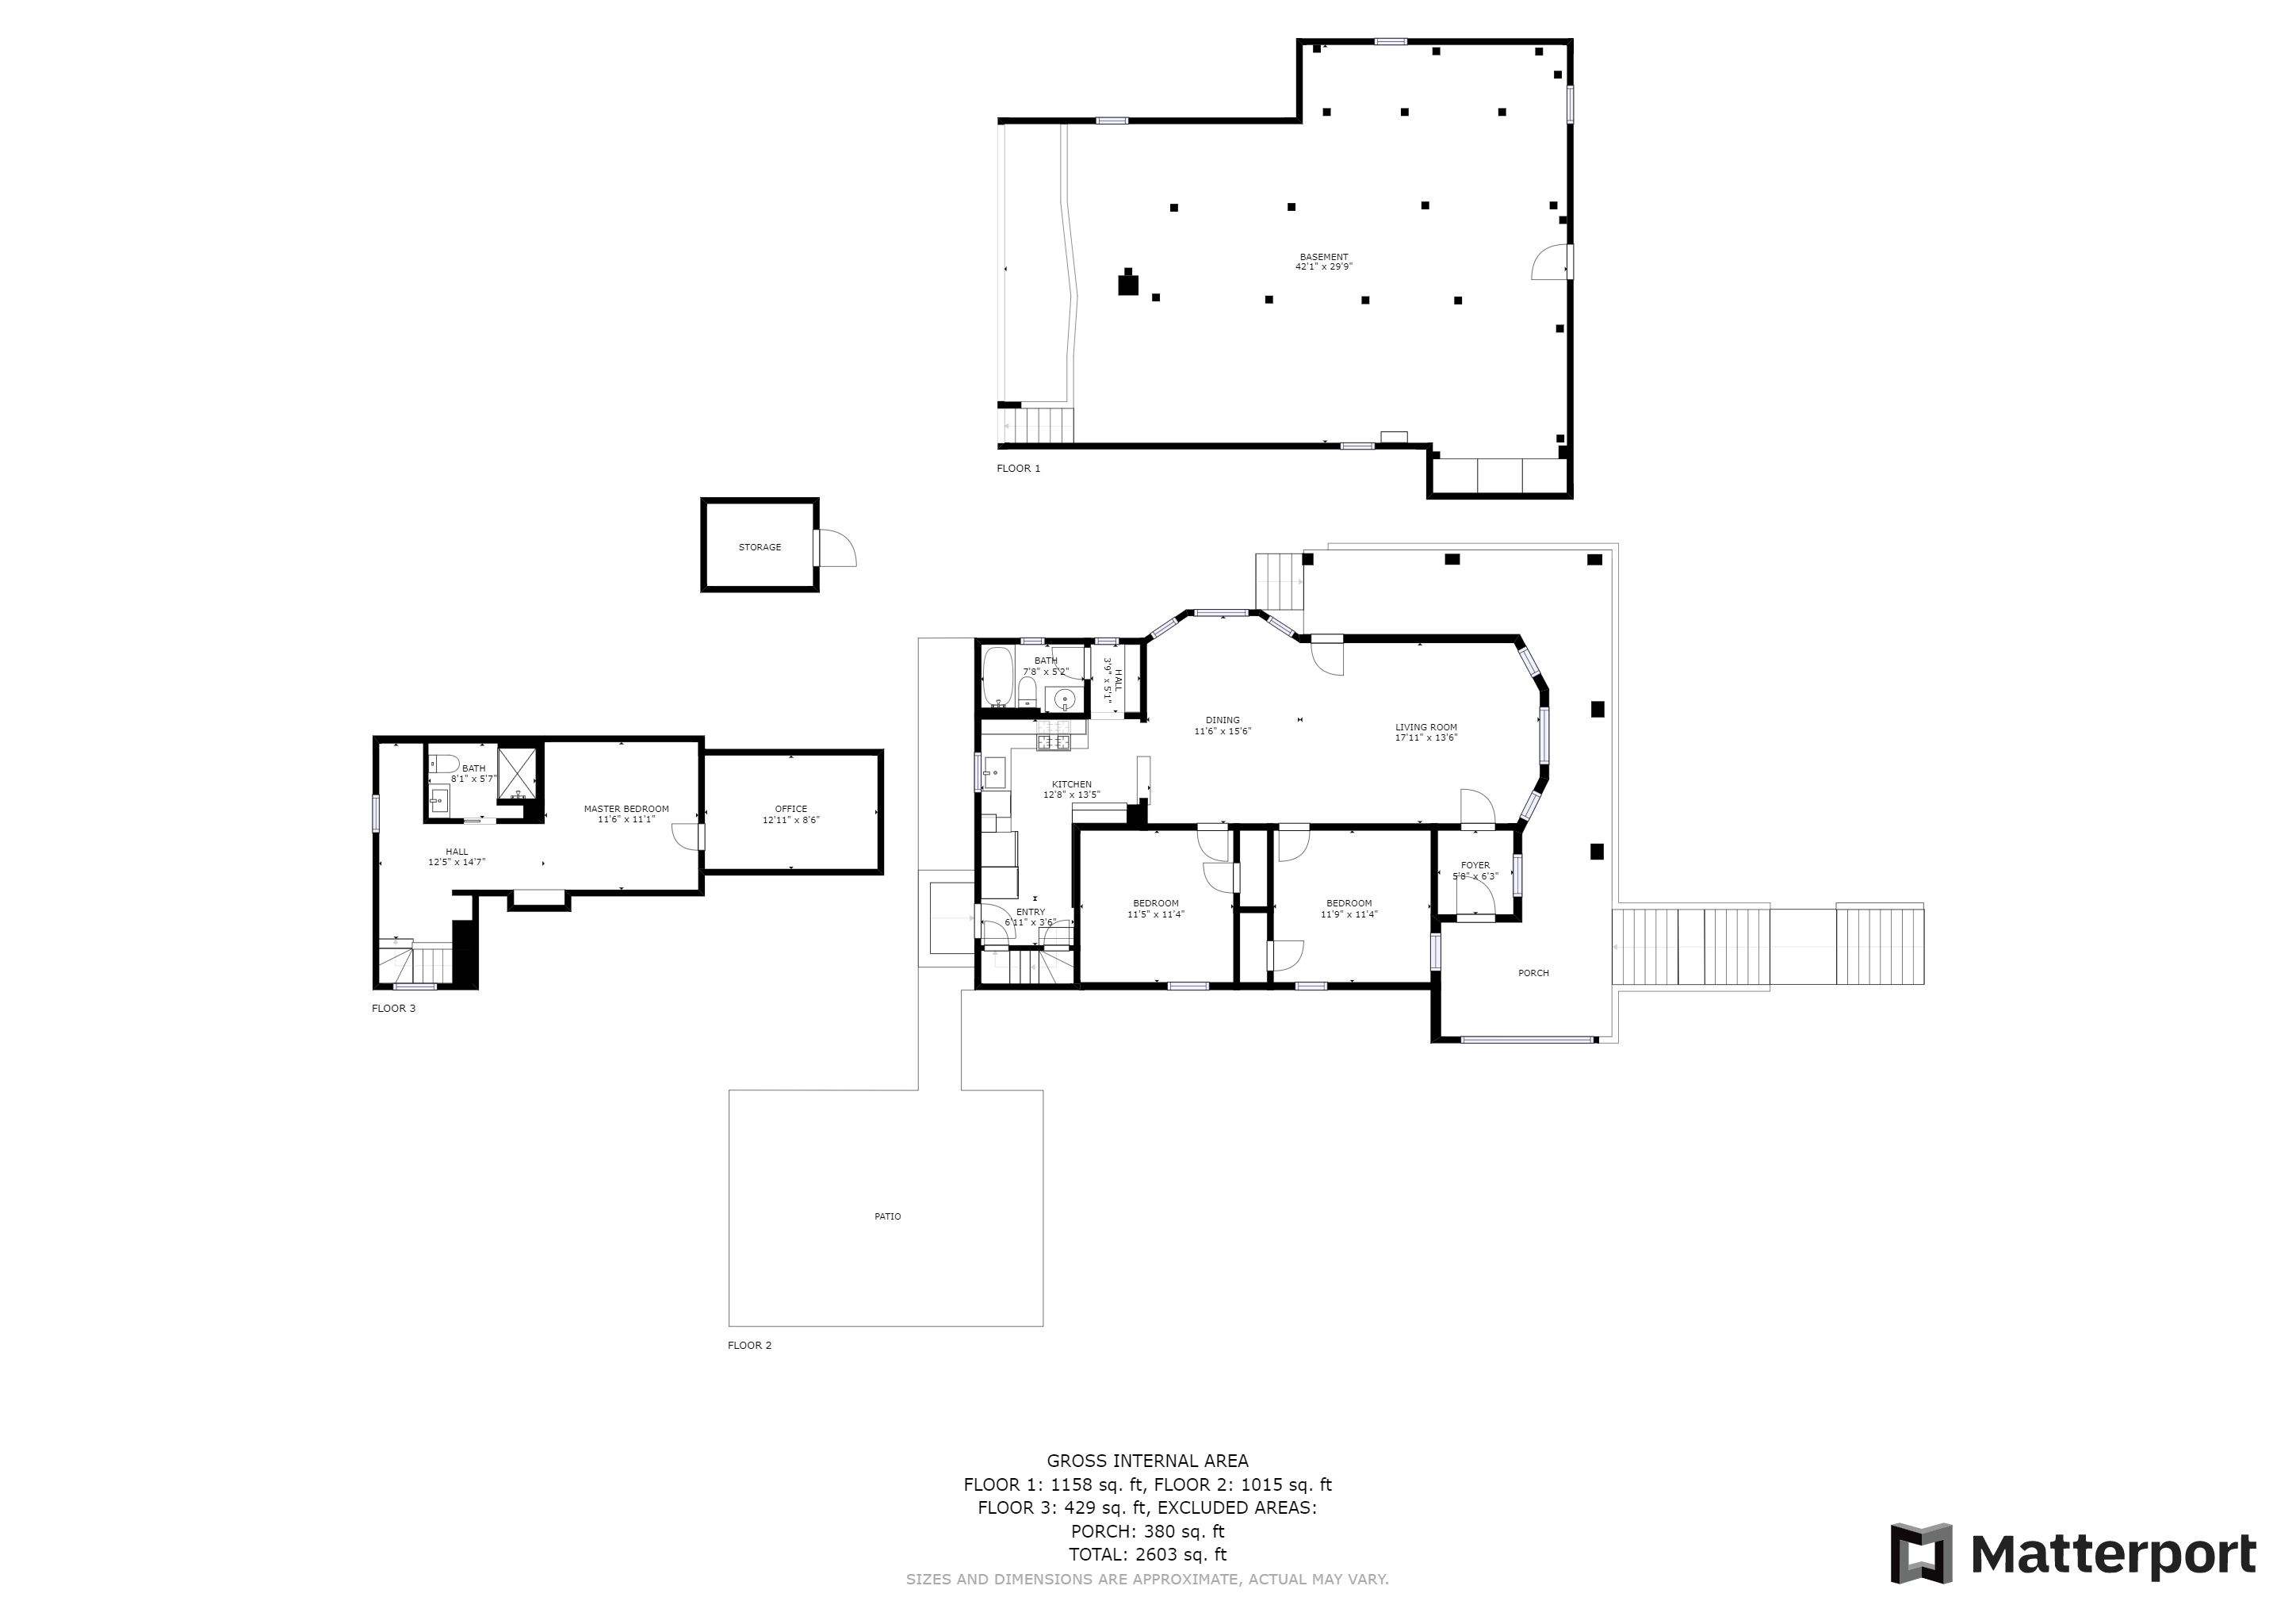 4011 14th Ave S - Floorplans_1-Page